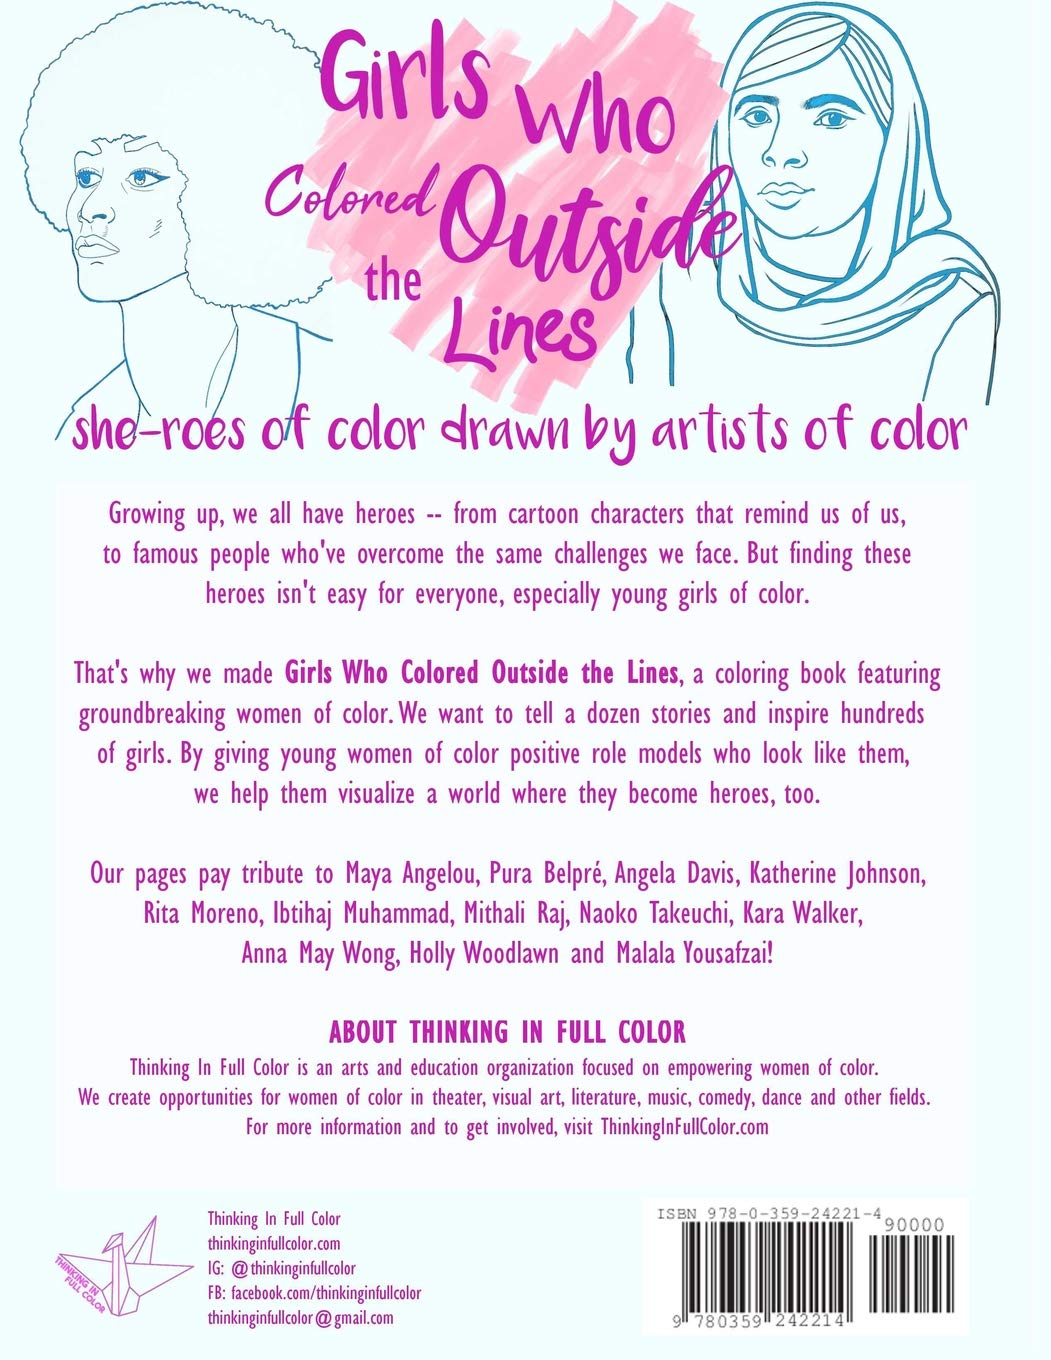 Girls who colored outside the lines summer dawn reyes 9780359242214 amazon com books